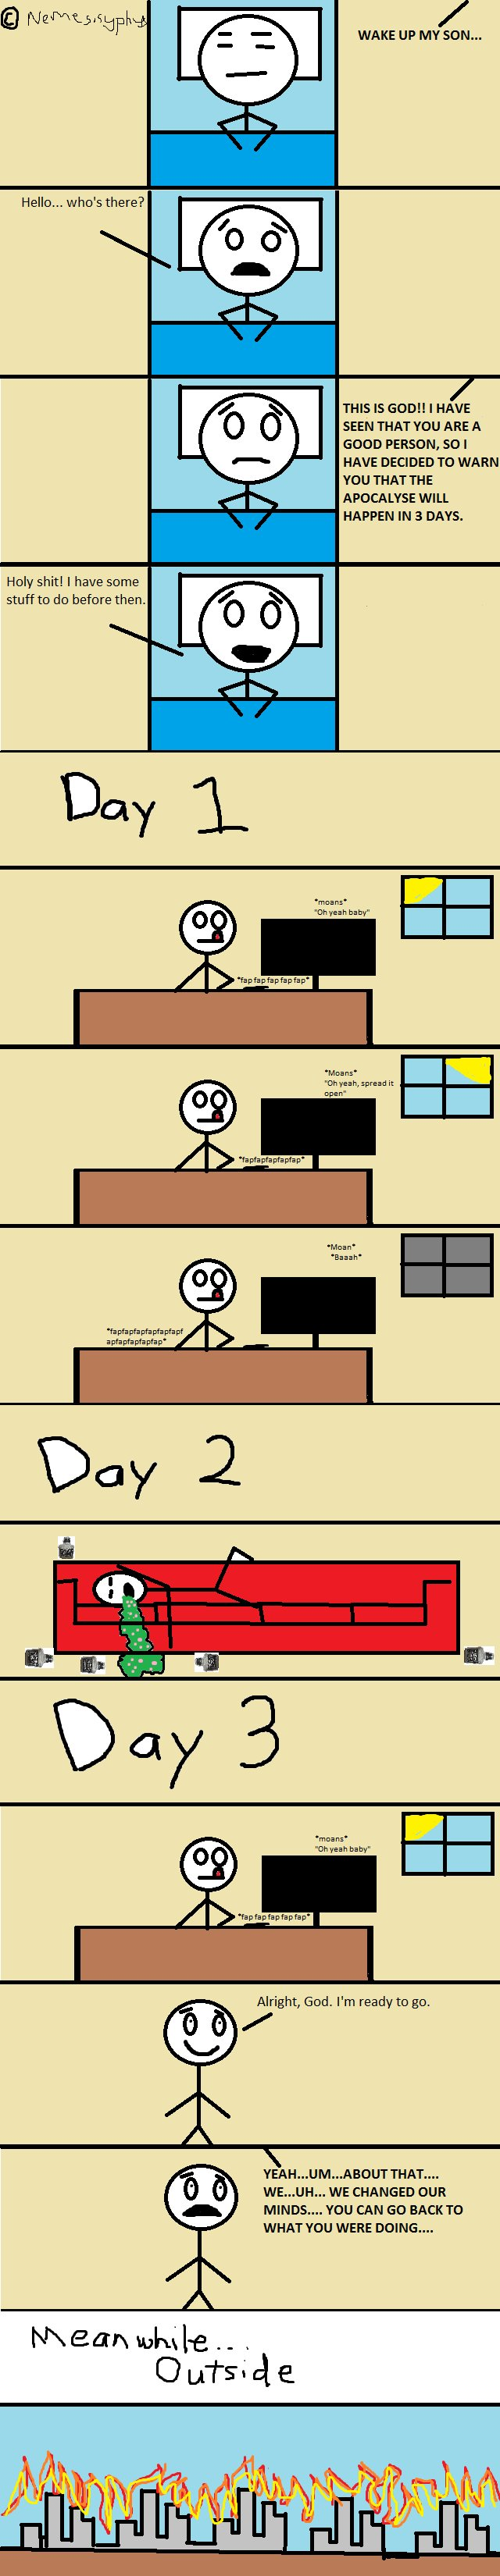 *OC Comic* #5 - 3 Days